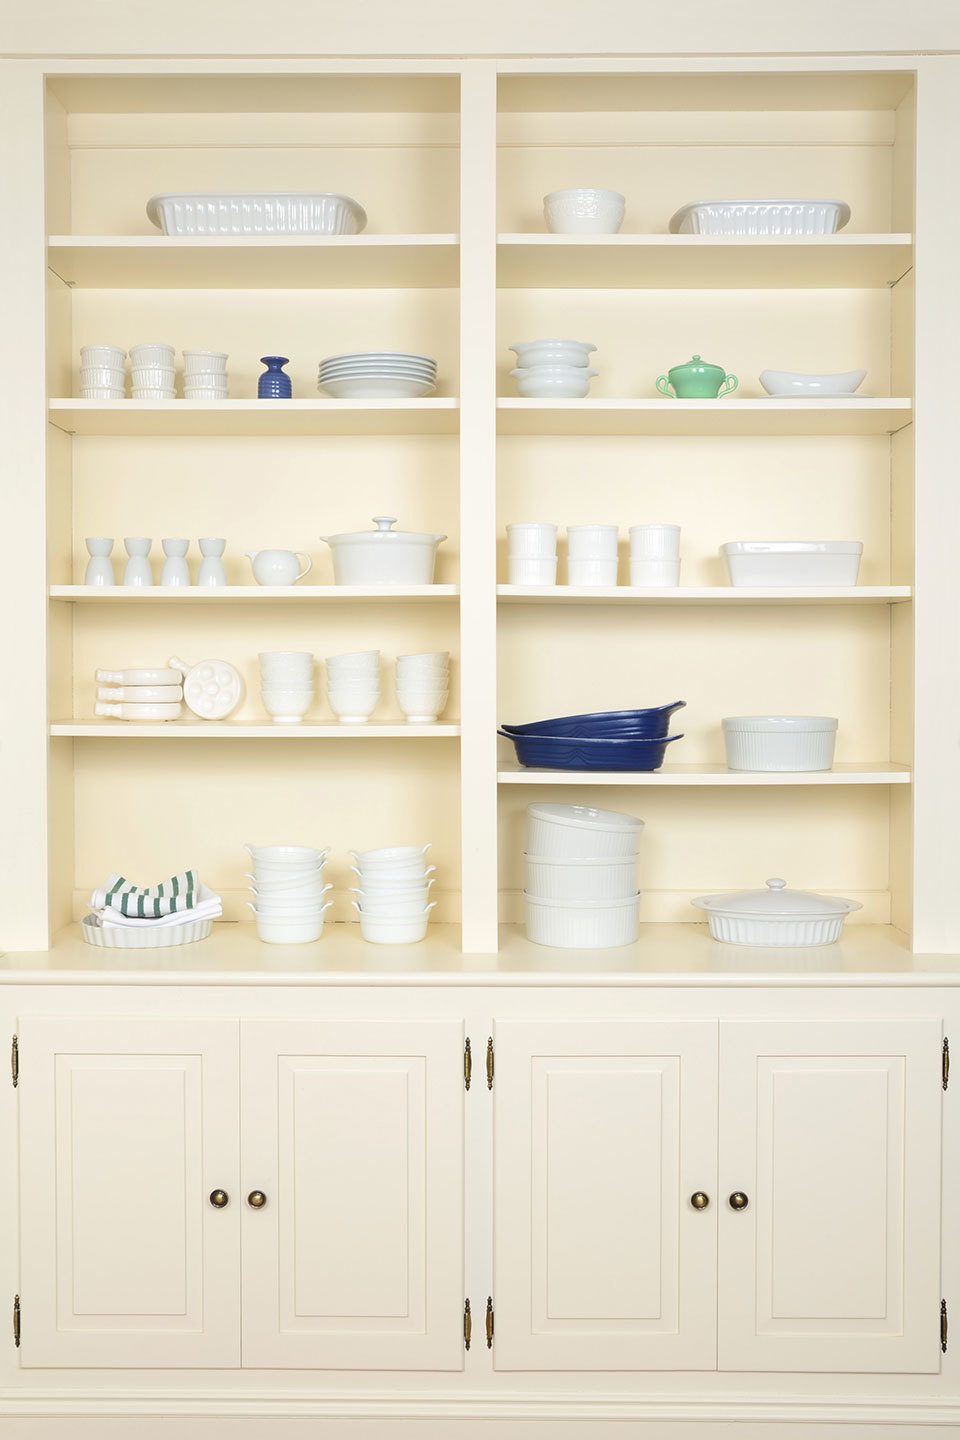 shelving with essential dishes organized neatly